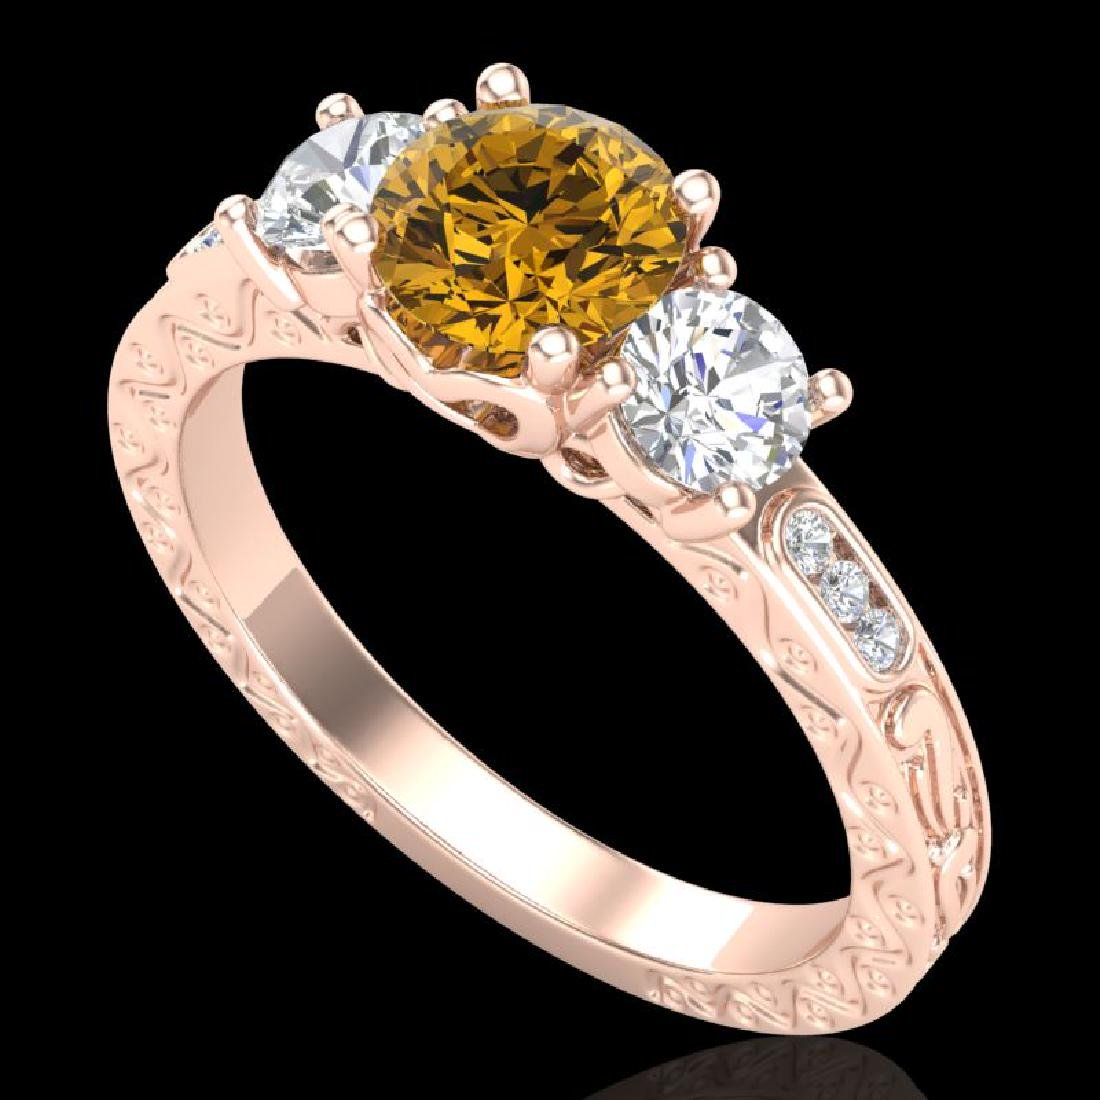 1.41 CTW Intense Fancy Yellow Diamond Art Deco 3 Stone